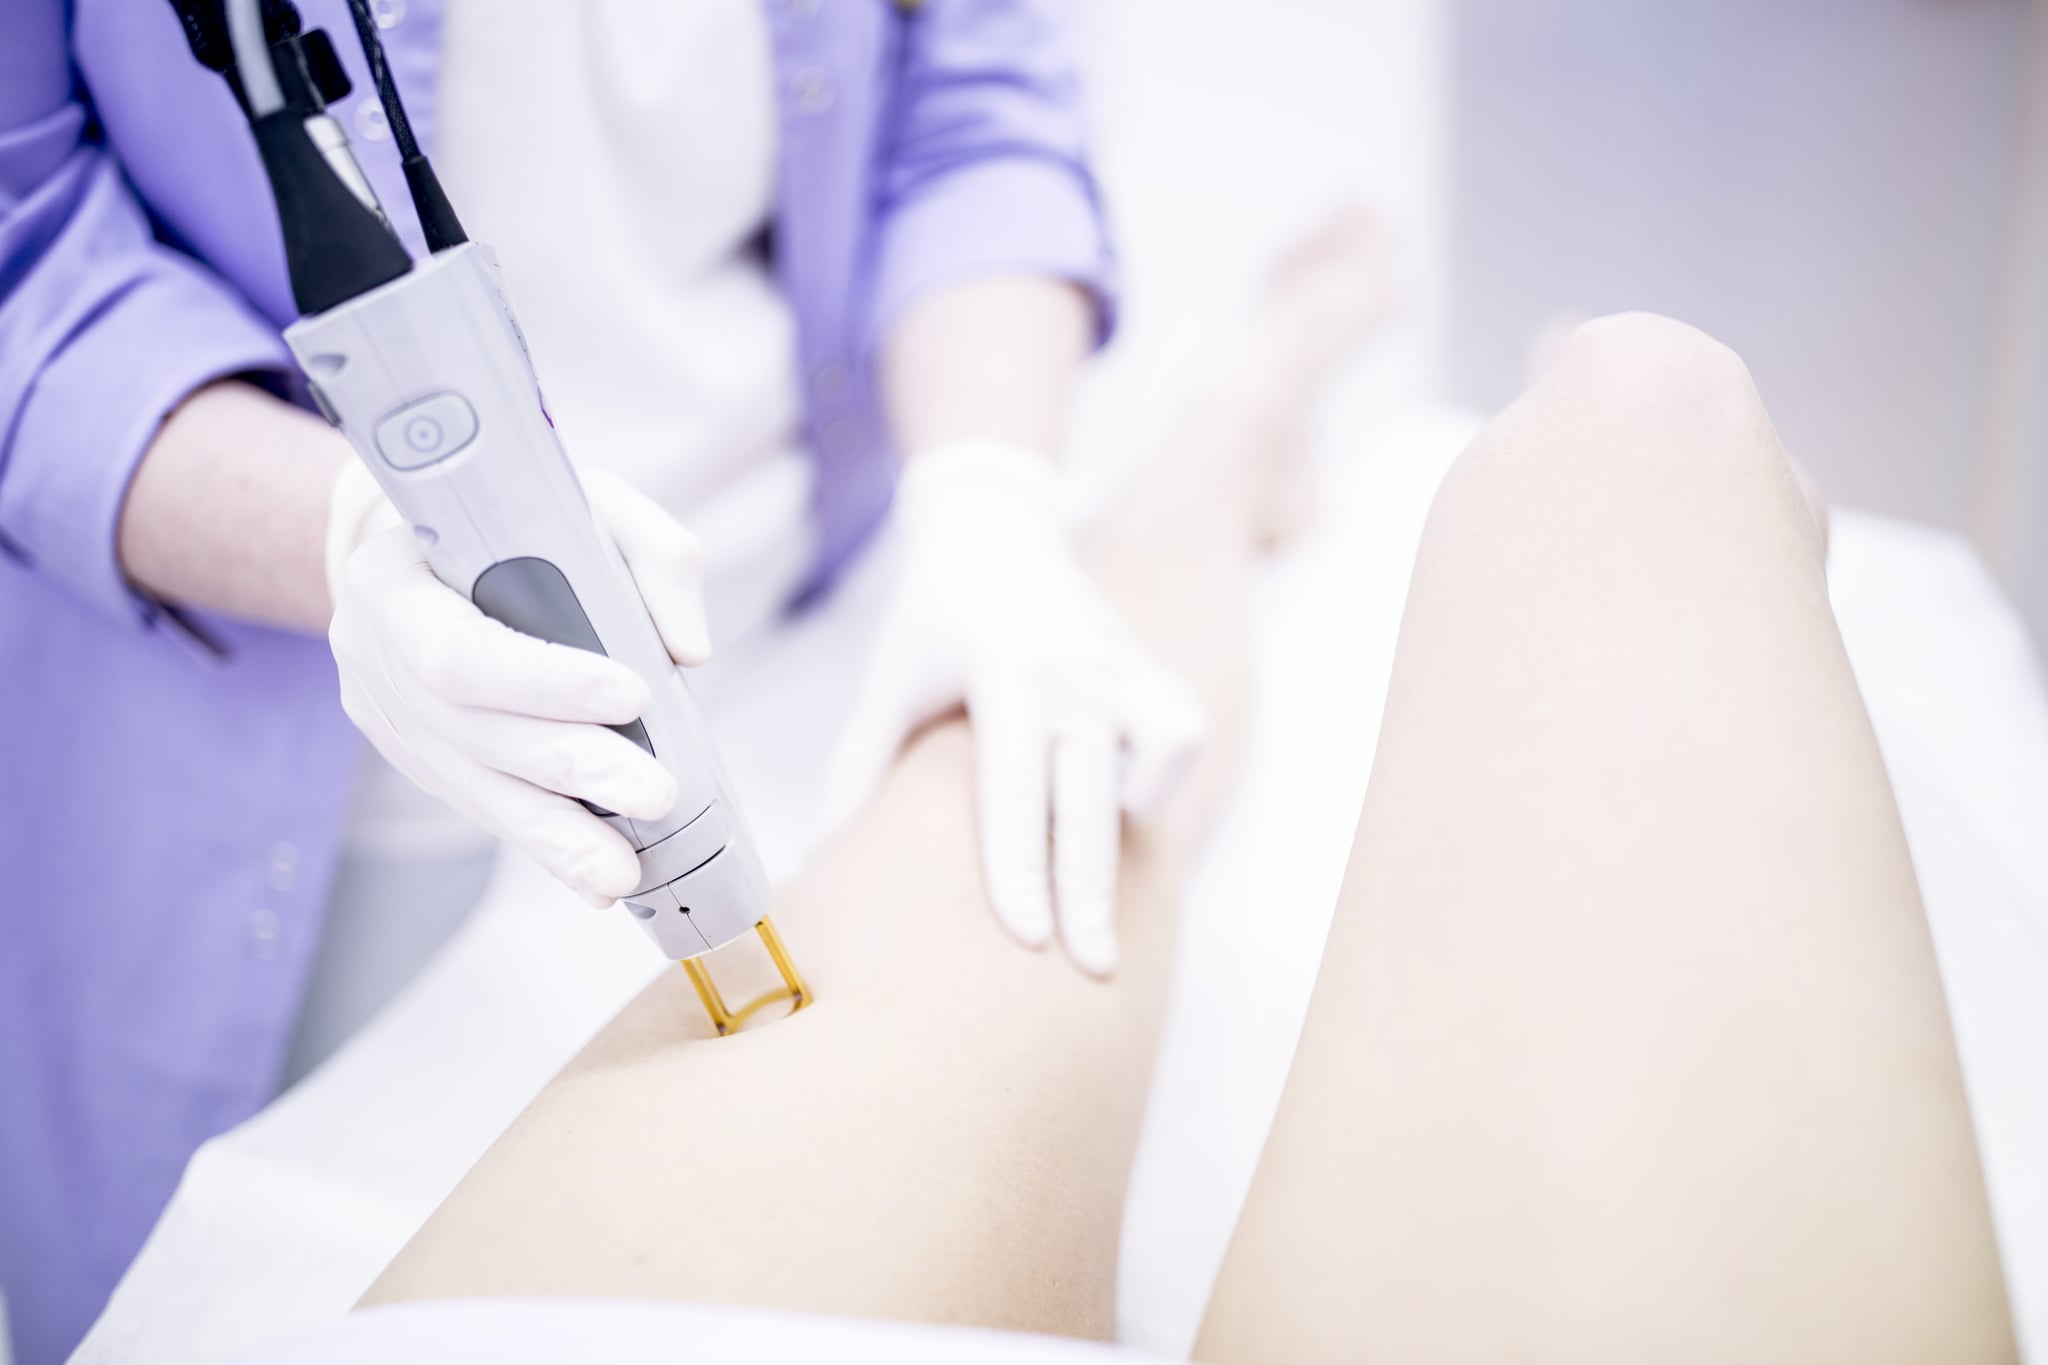 Young woman getting laser hair removal treatment on leg, close-up.